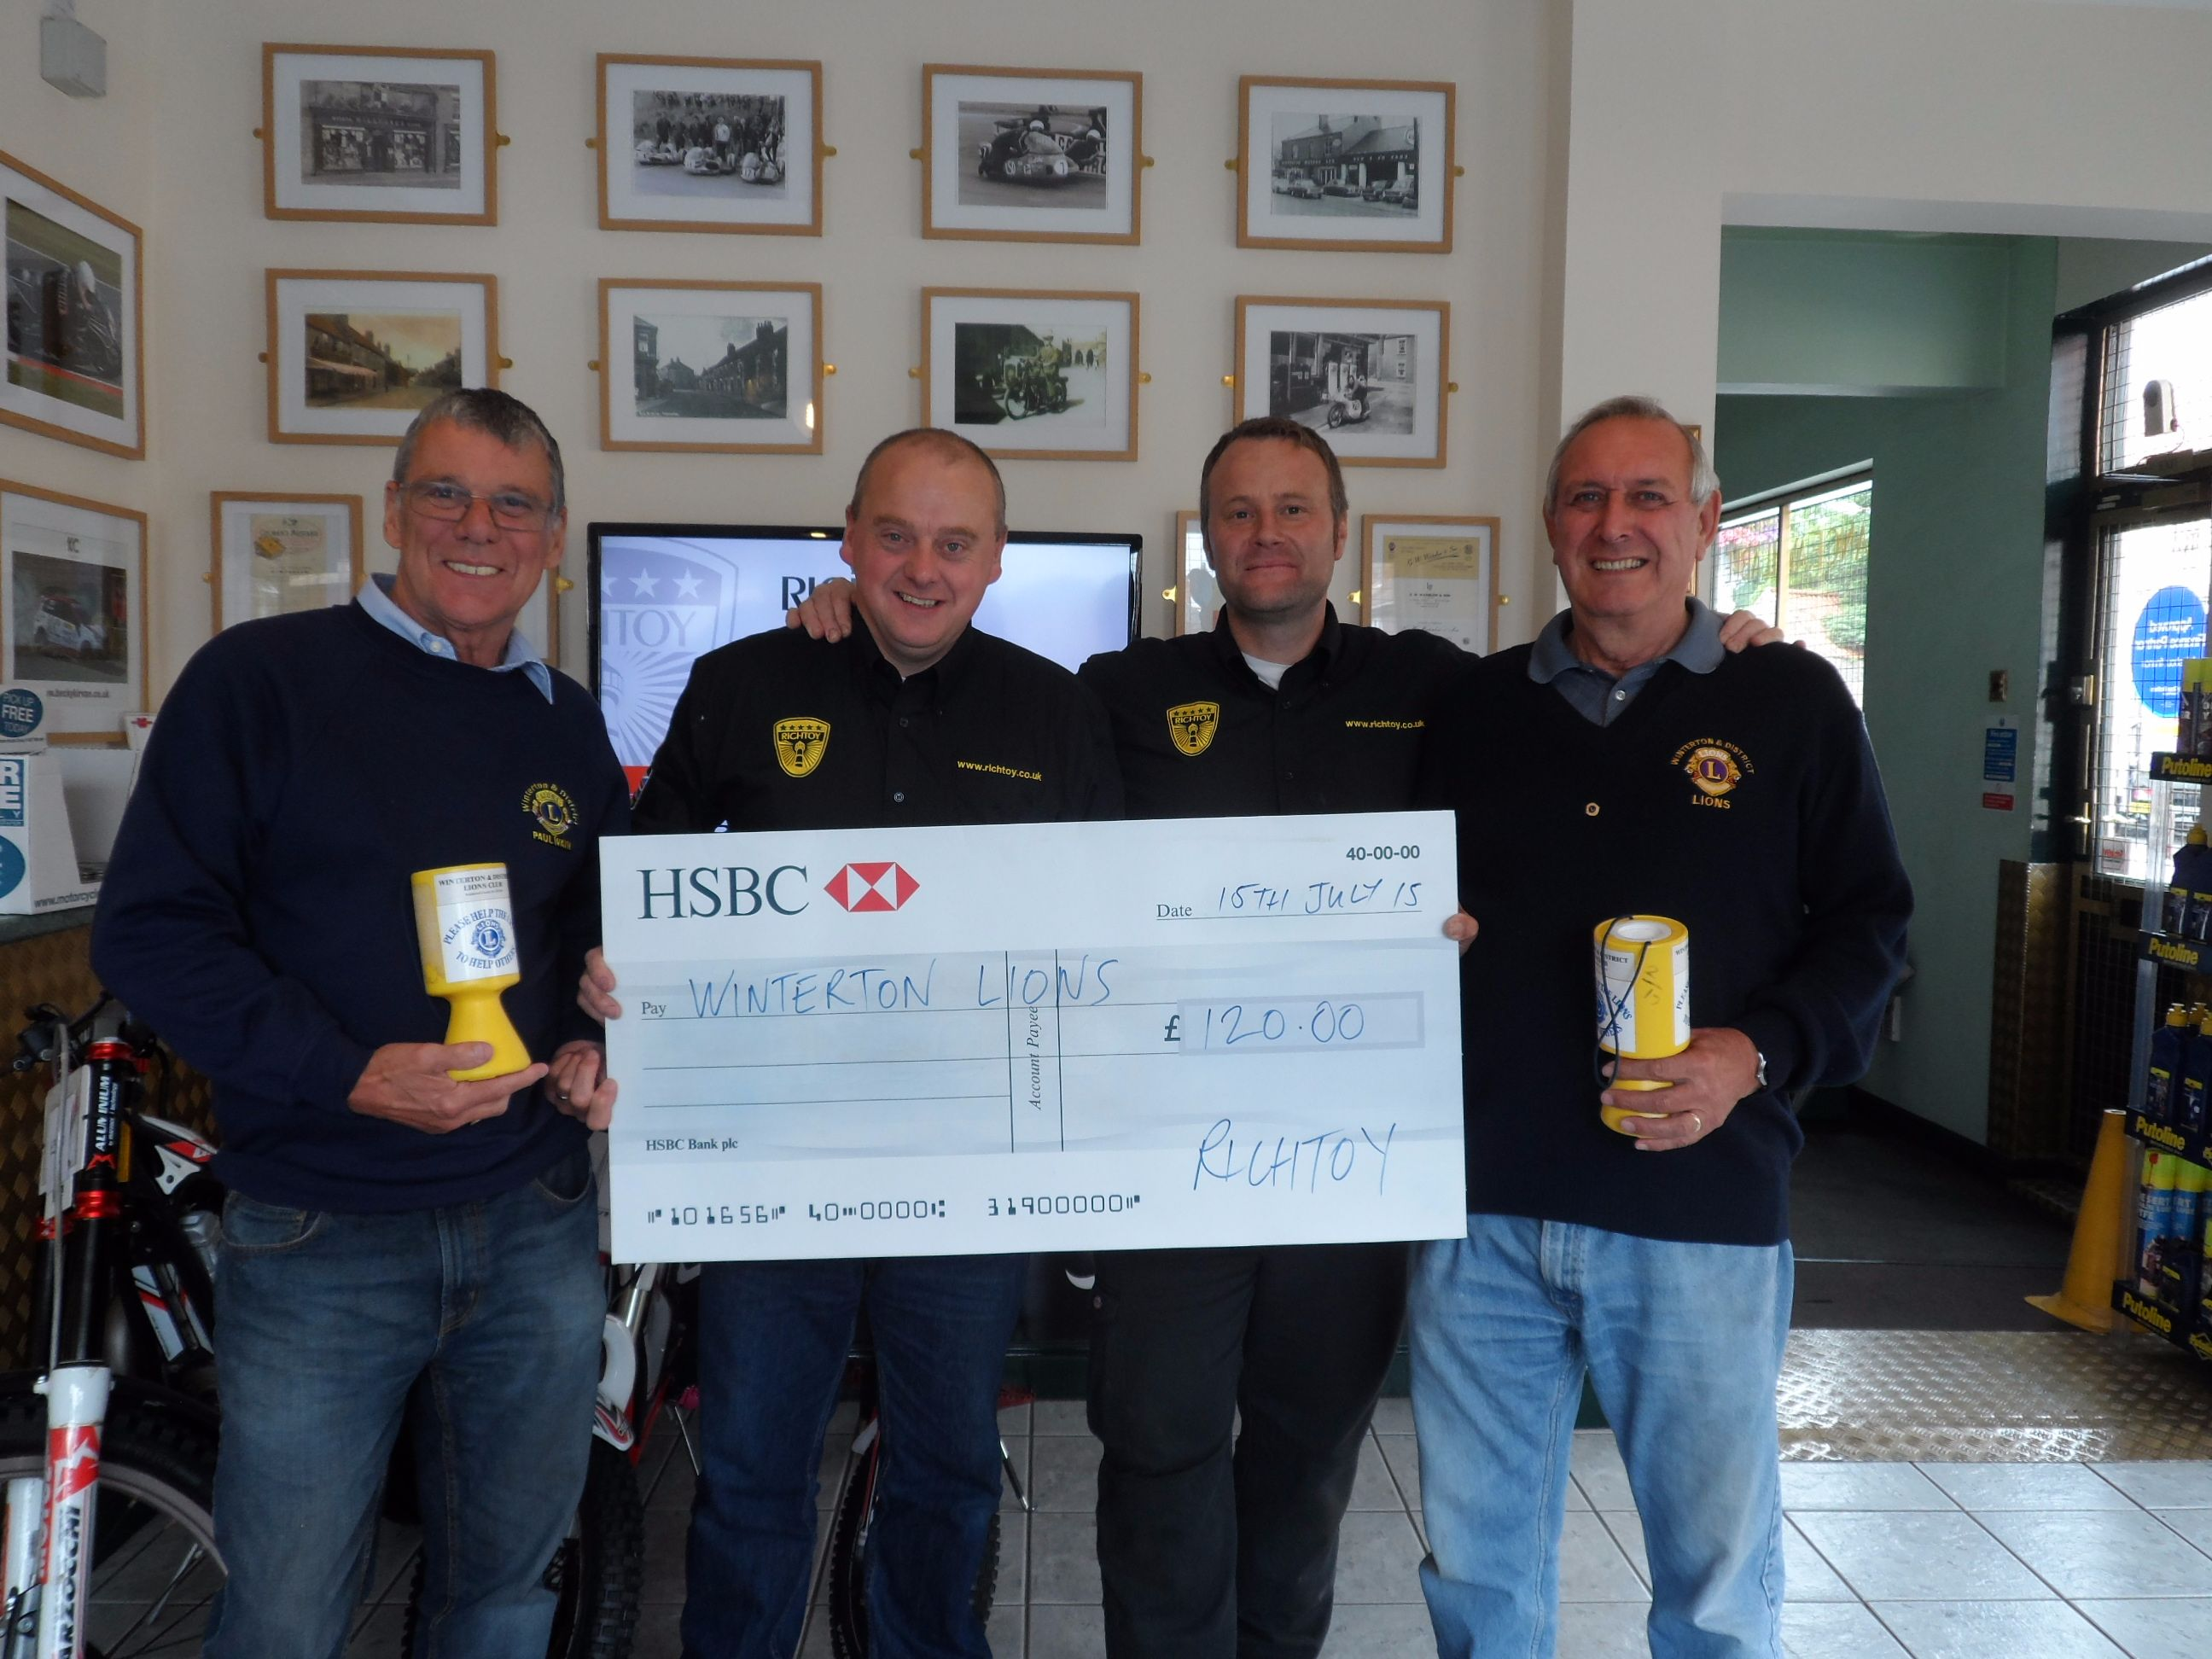 Richtoy hand over a cheque of £120 to local charity Winterton Lions